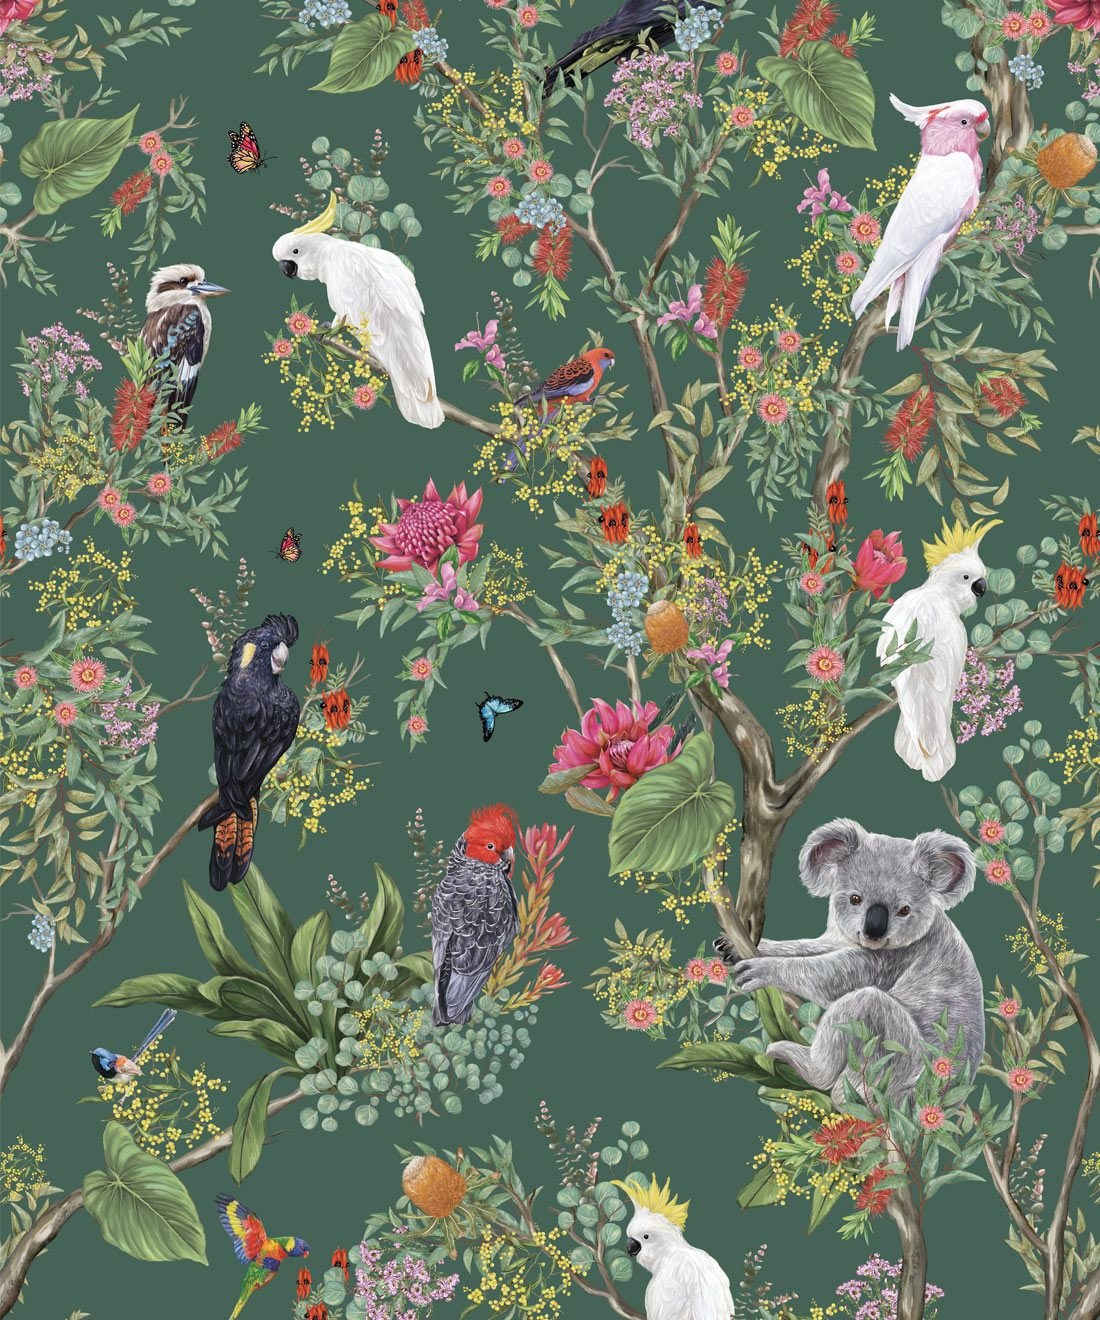 Australia Wallpaper • Cockatoos, Koalas, Parrots, Finches • Milton & King USA • Green Wallpaper Swatch